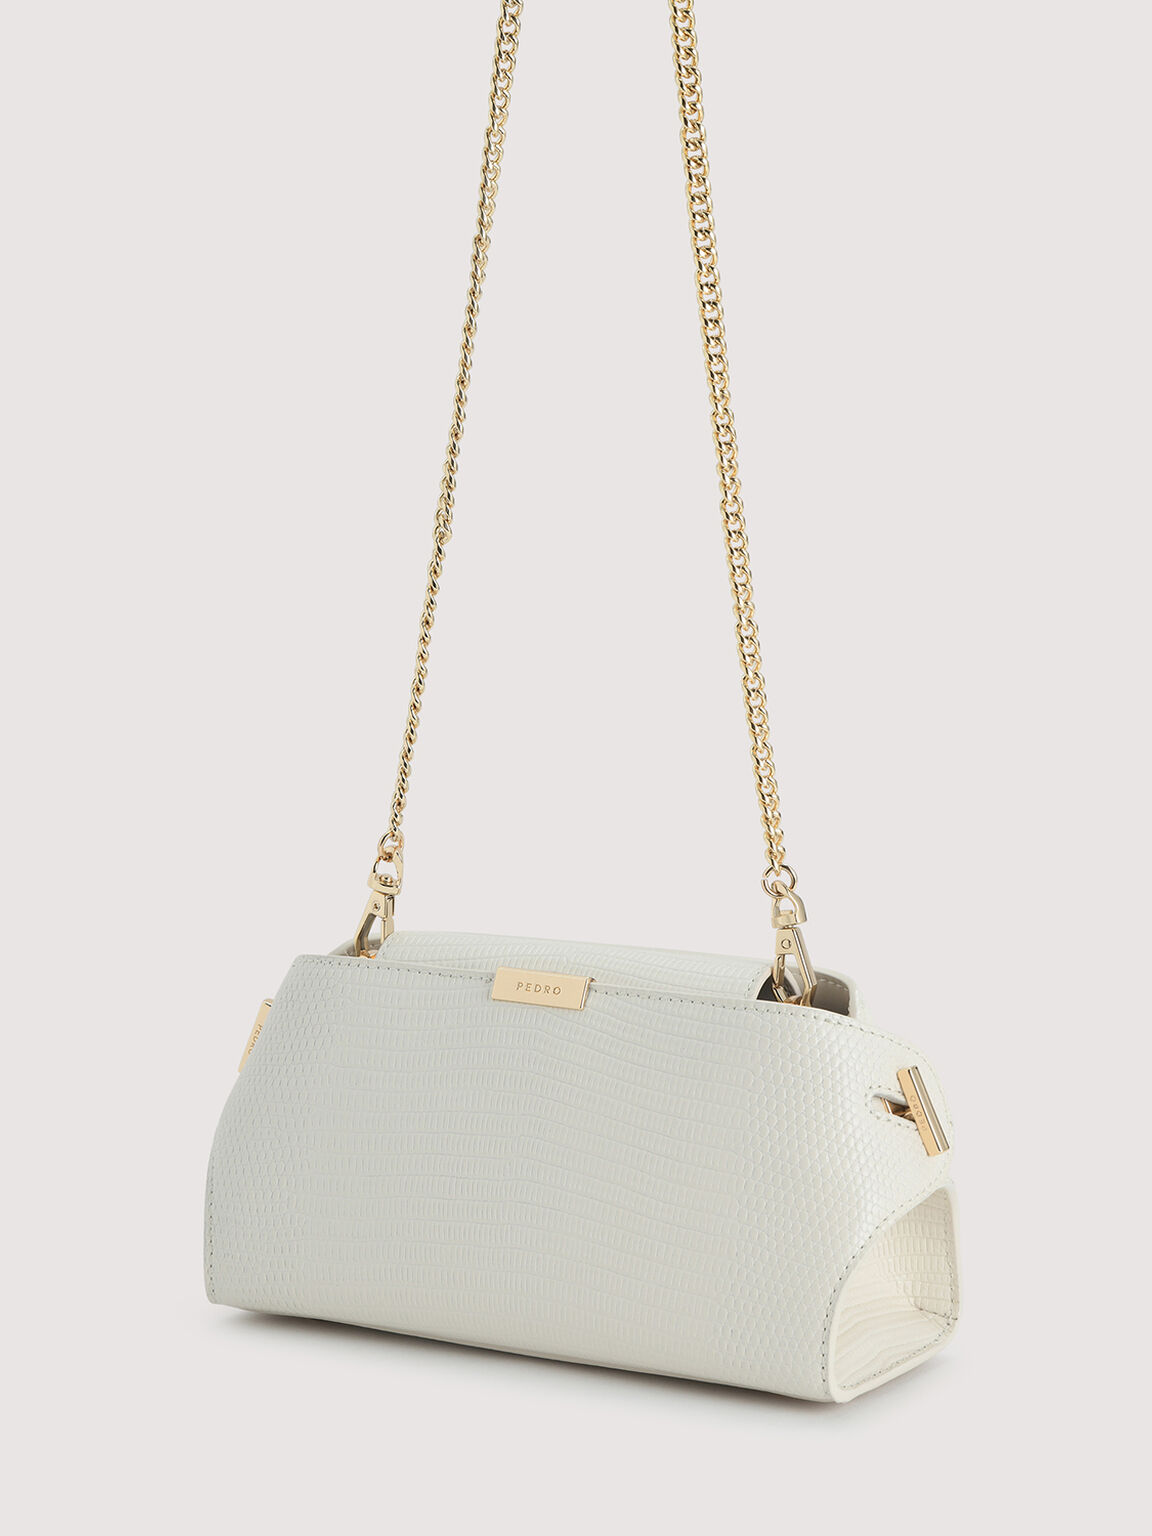 Embossed Leather Clutch, Chalk, hi-res